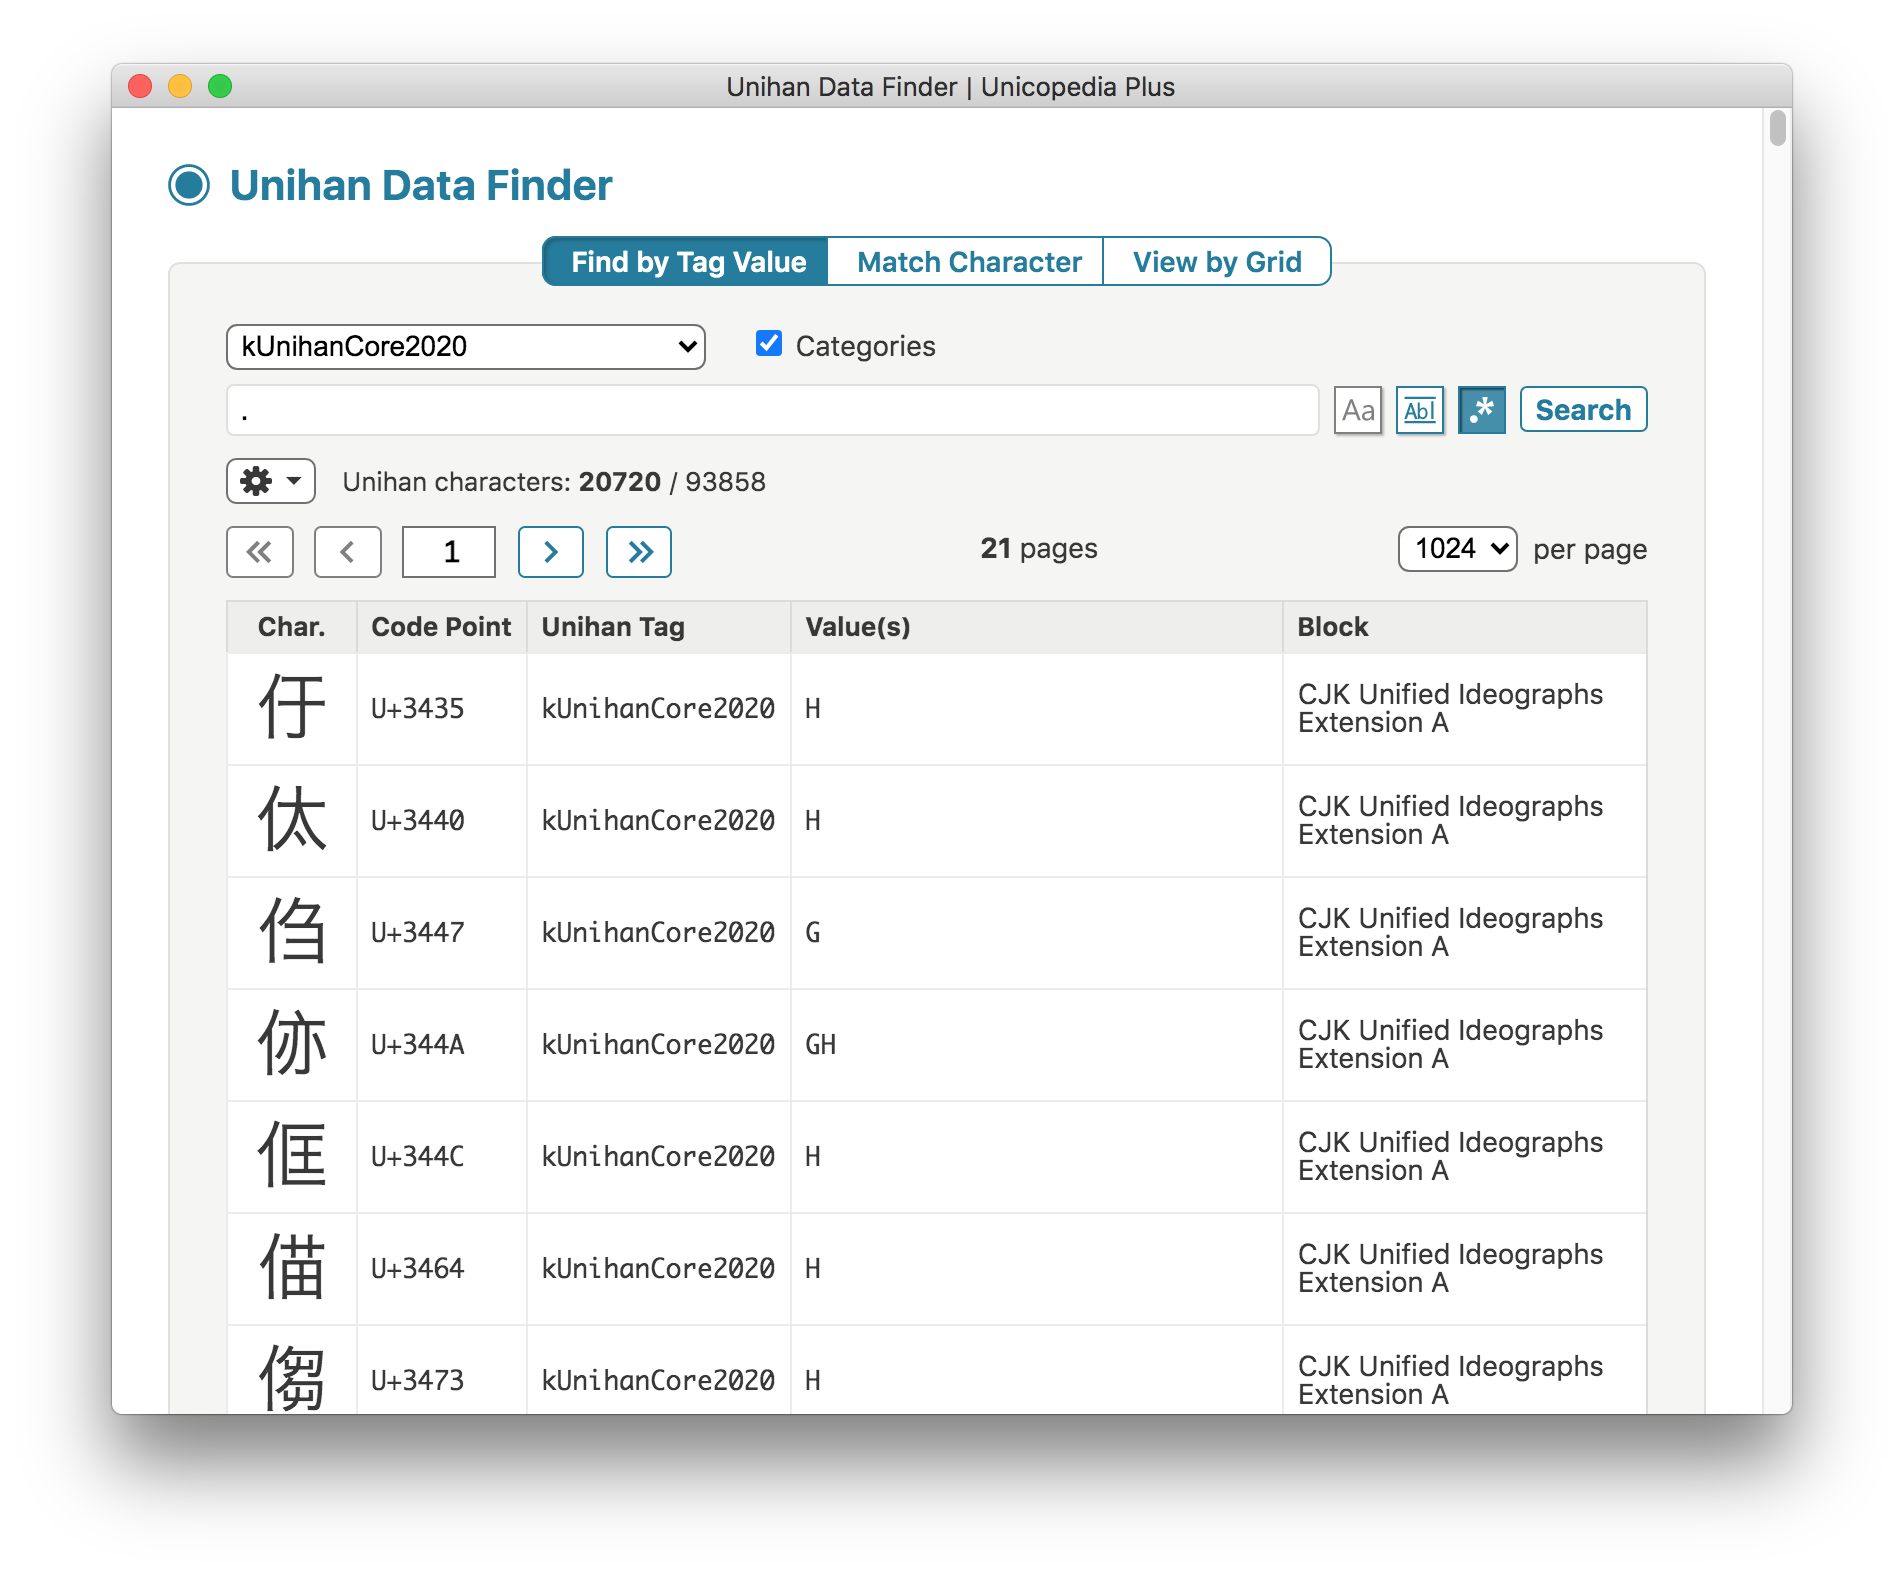 Unihan Data Finder - Find by Tag Value screenshot